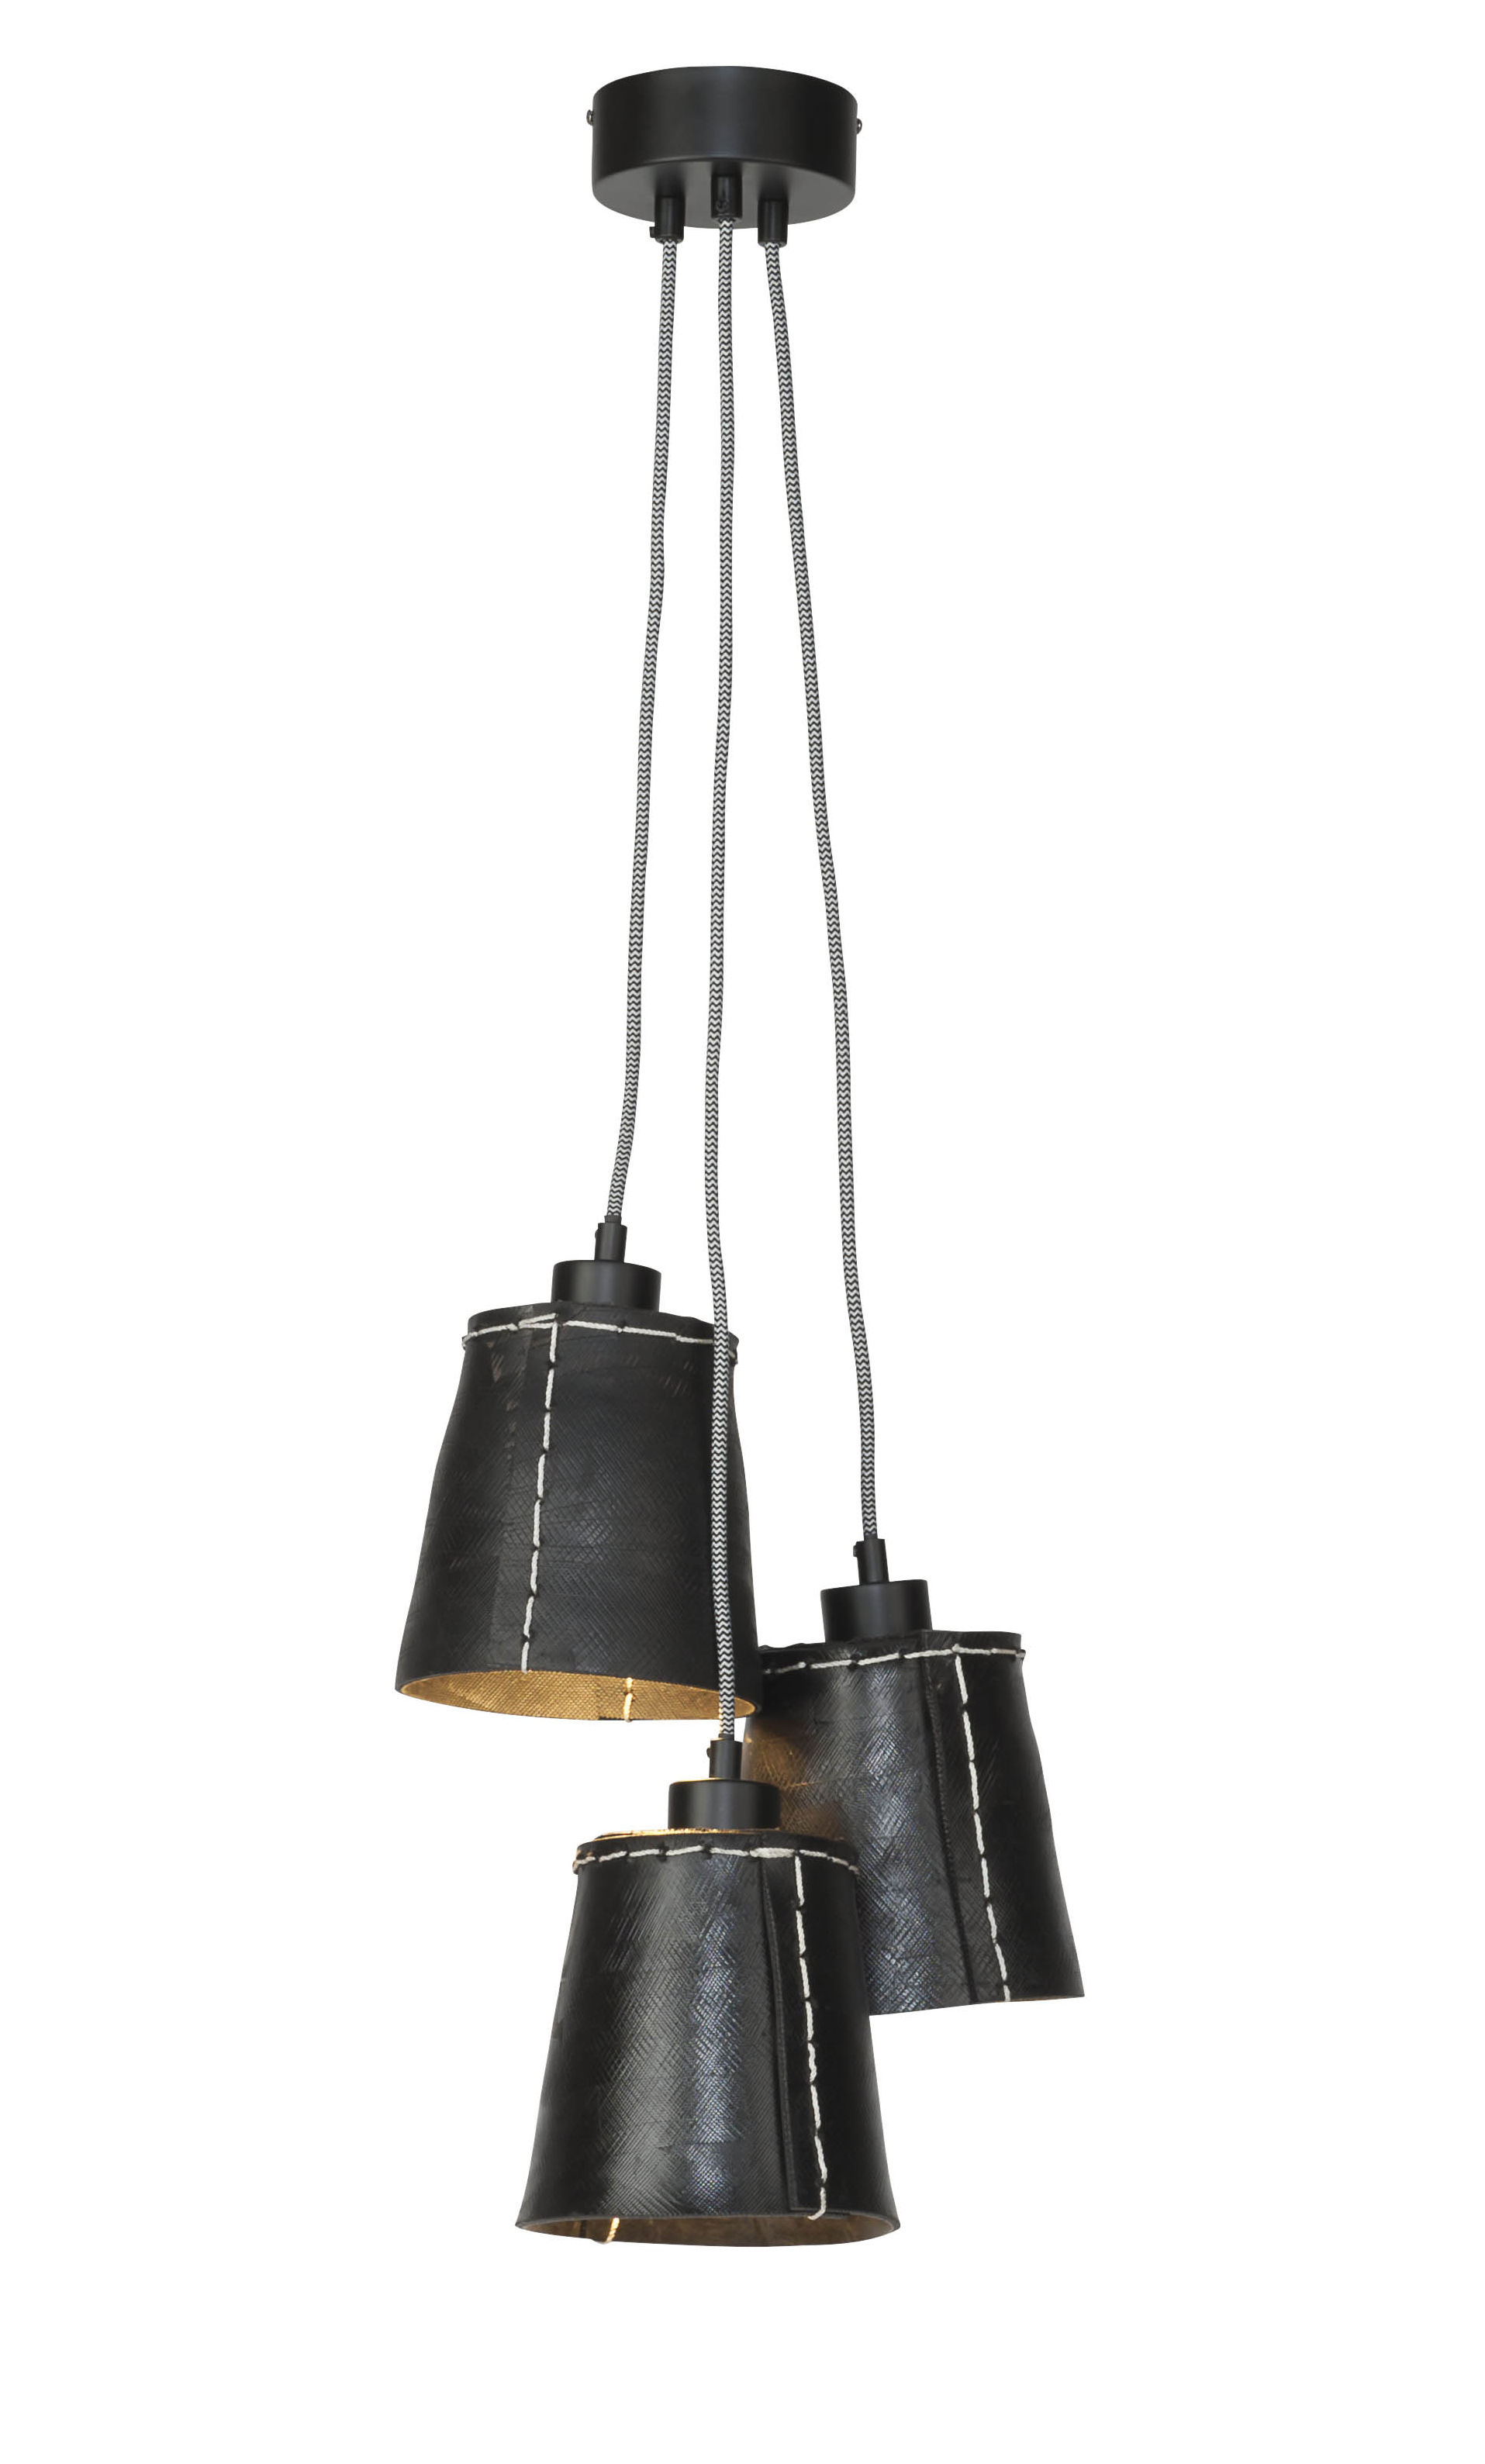 Lighting - Pendant Lighting - Amazon Pendant - / 3 lampshades - Recycled tyre by GOOD&MOJO - Black - Recycled tyre